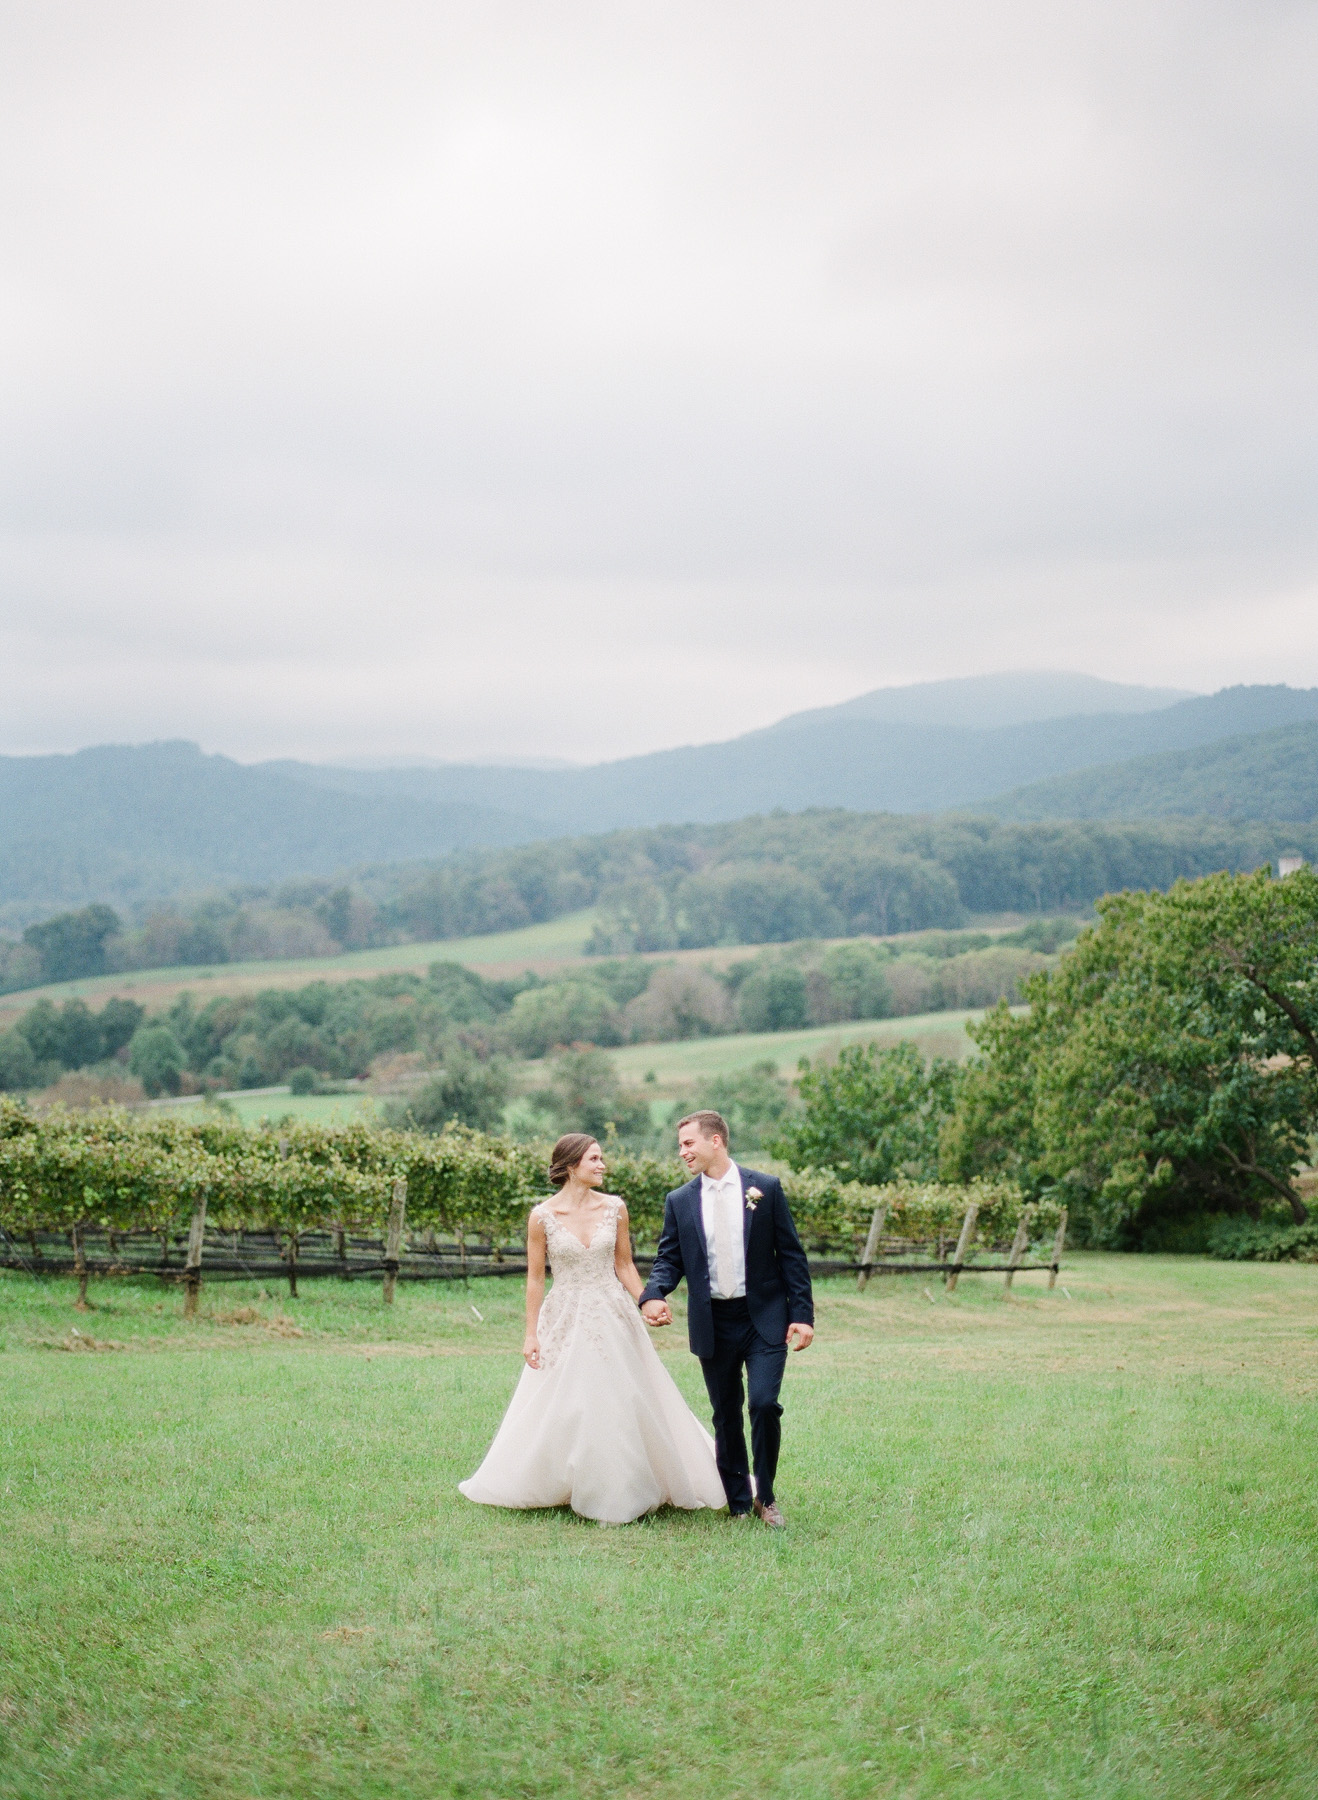 Pippin-Hill-Farm-and-Vinyards-Wedding-Film-Photography-26.jpg